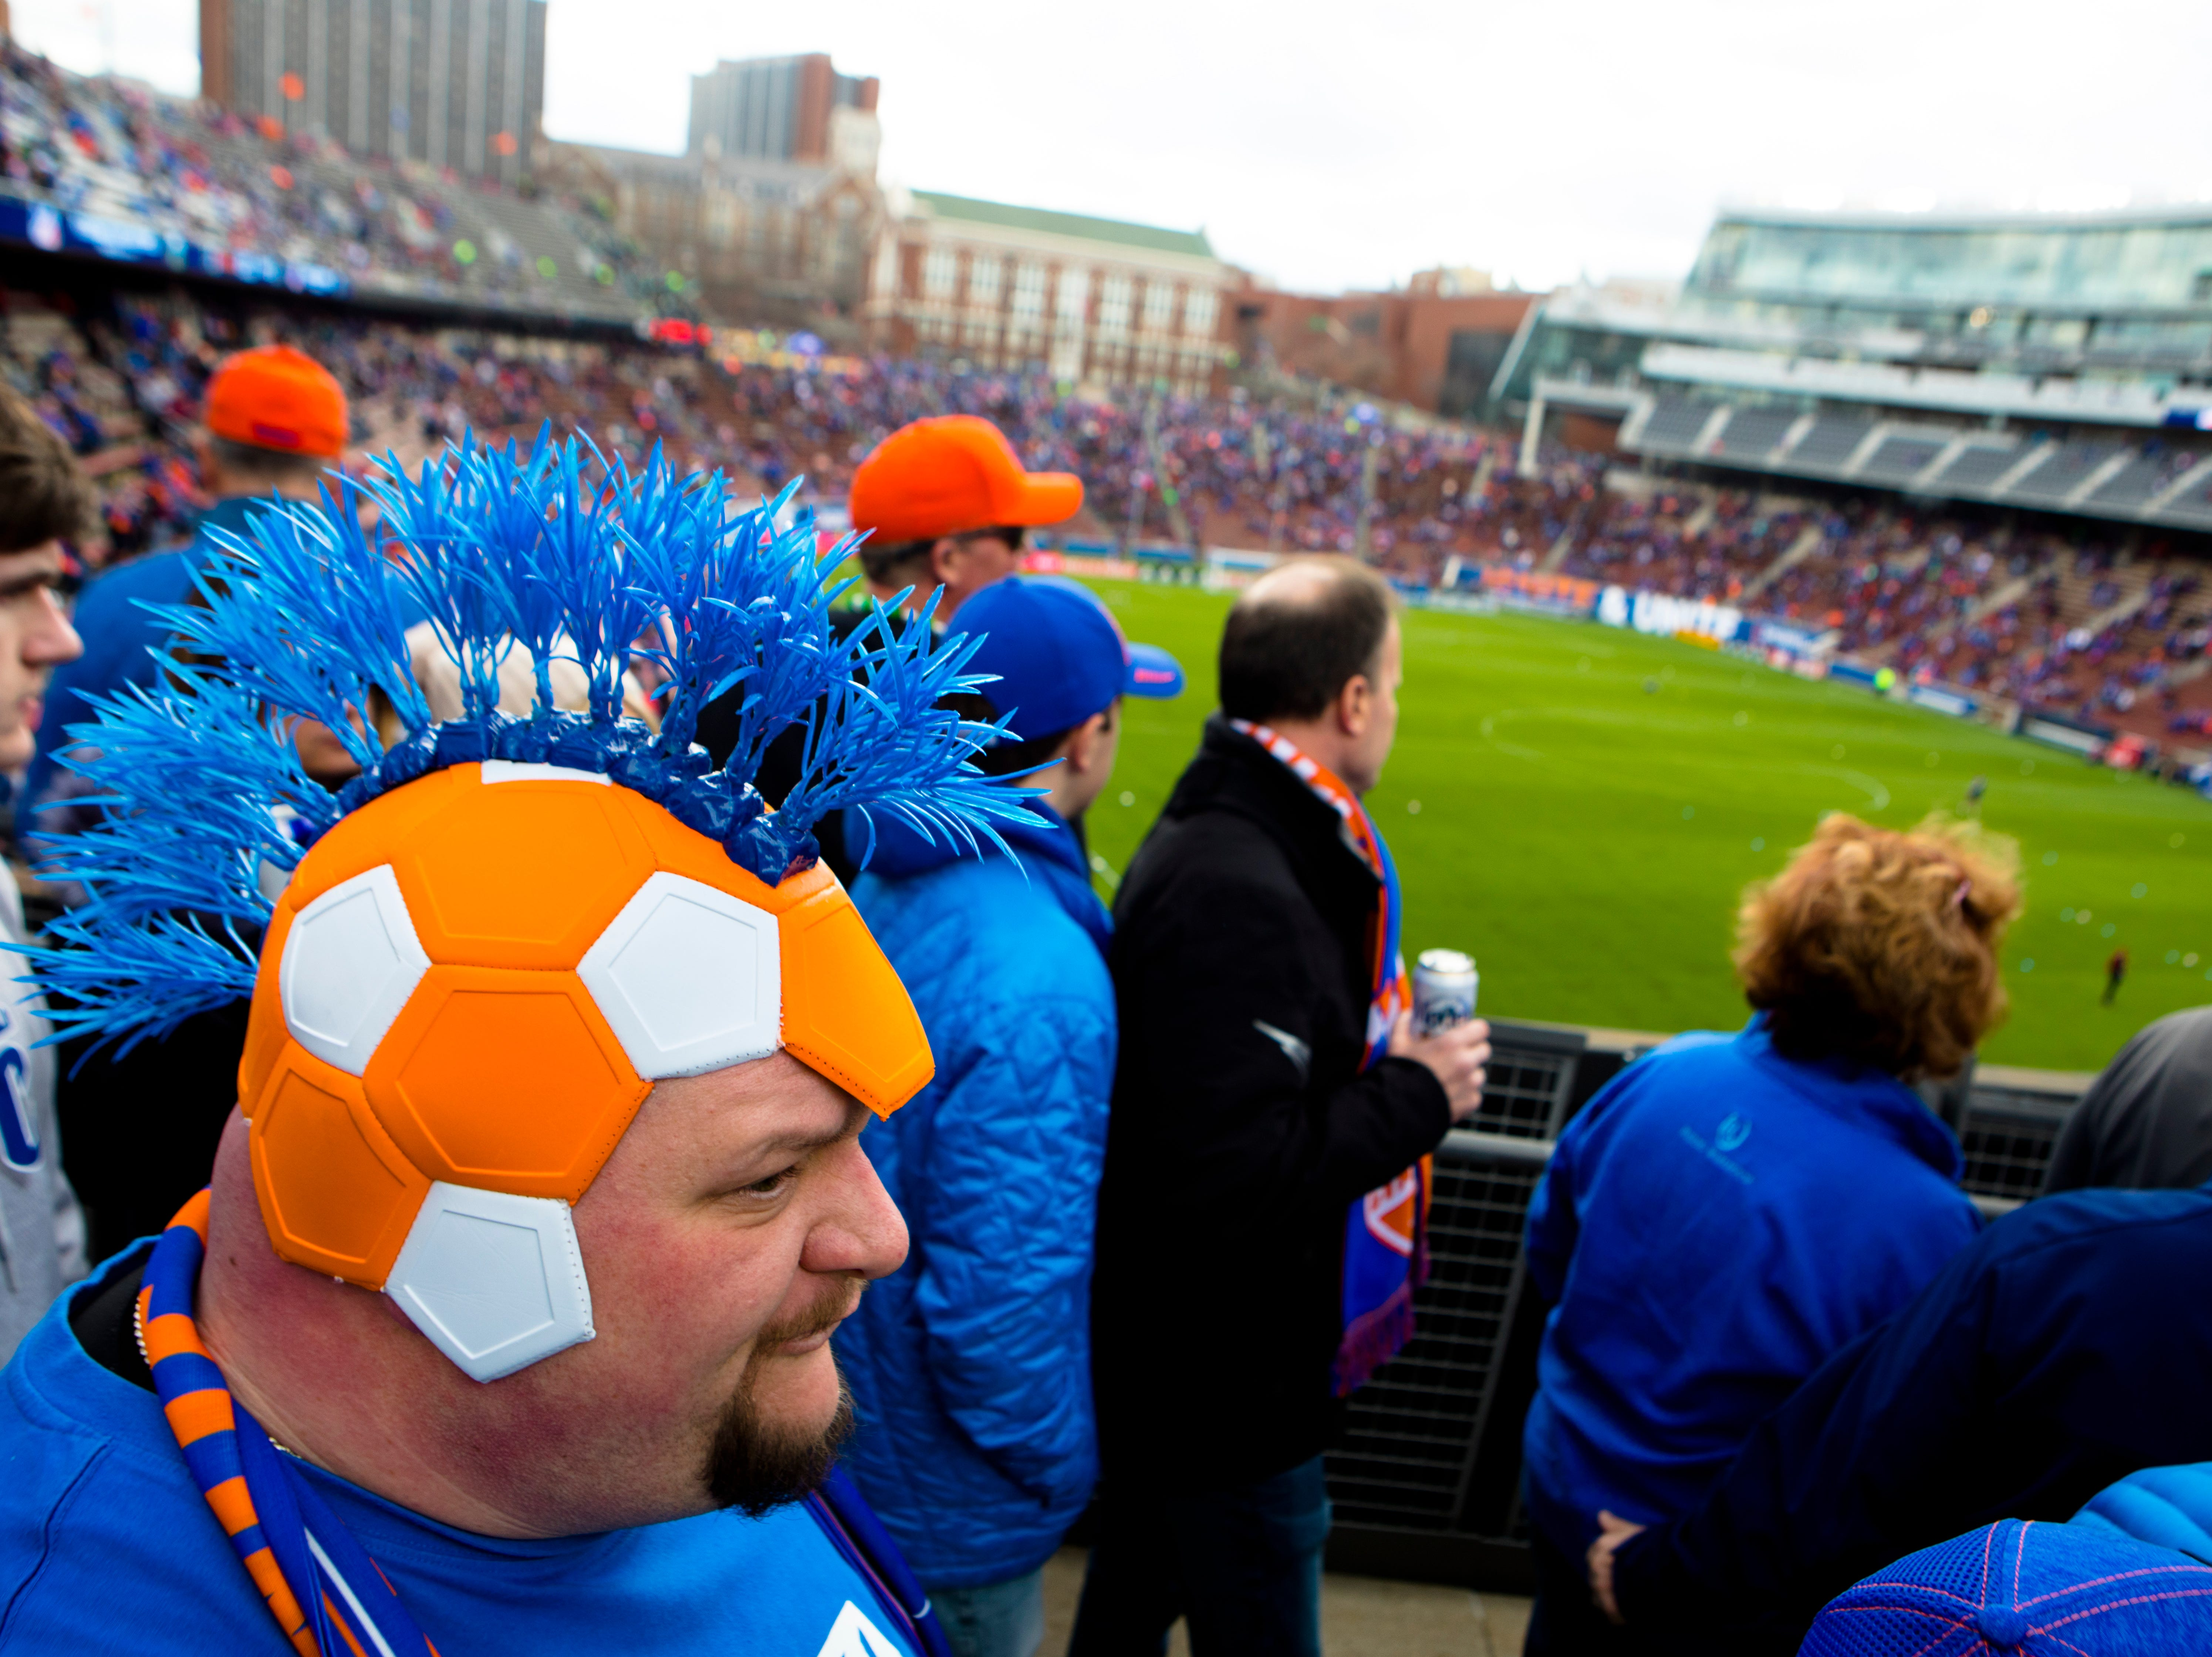 Josh Berling marches to the Bailey before the MLS match between FC Cincinnati and Portland Timbers on Sunday, March 17, 2019, at Nippert Stadium in Cincinnati.